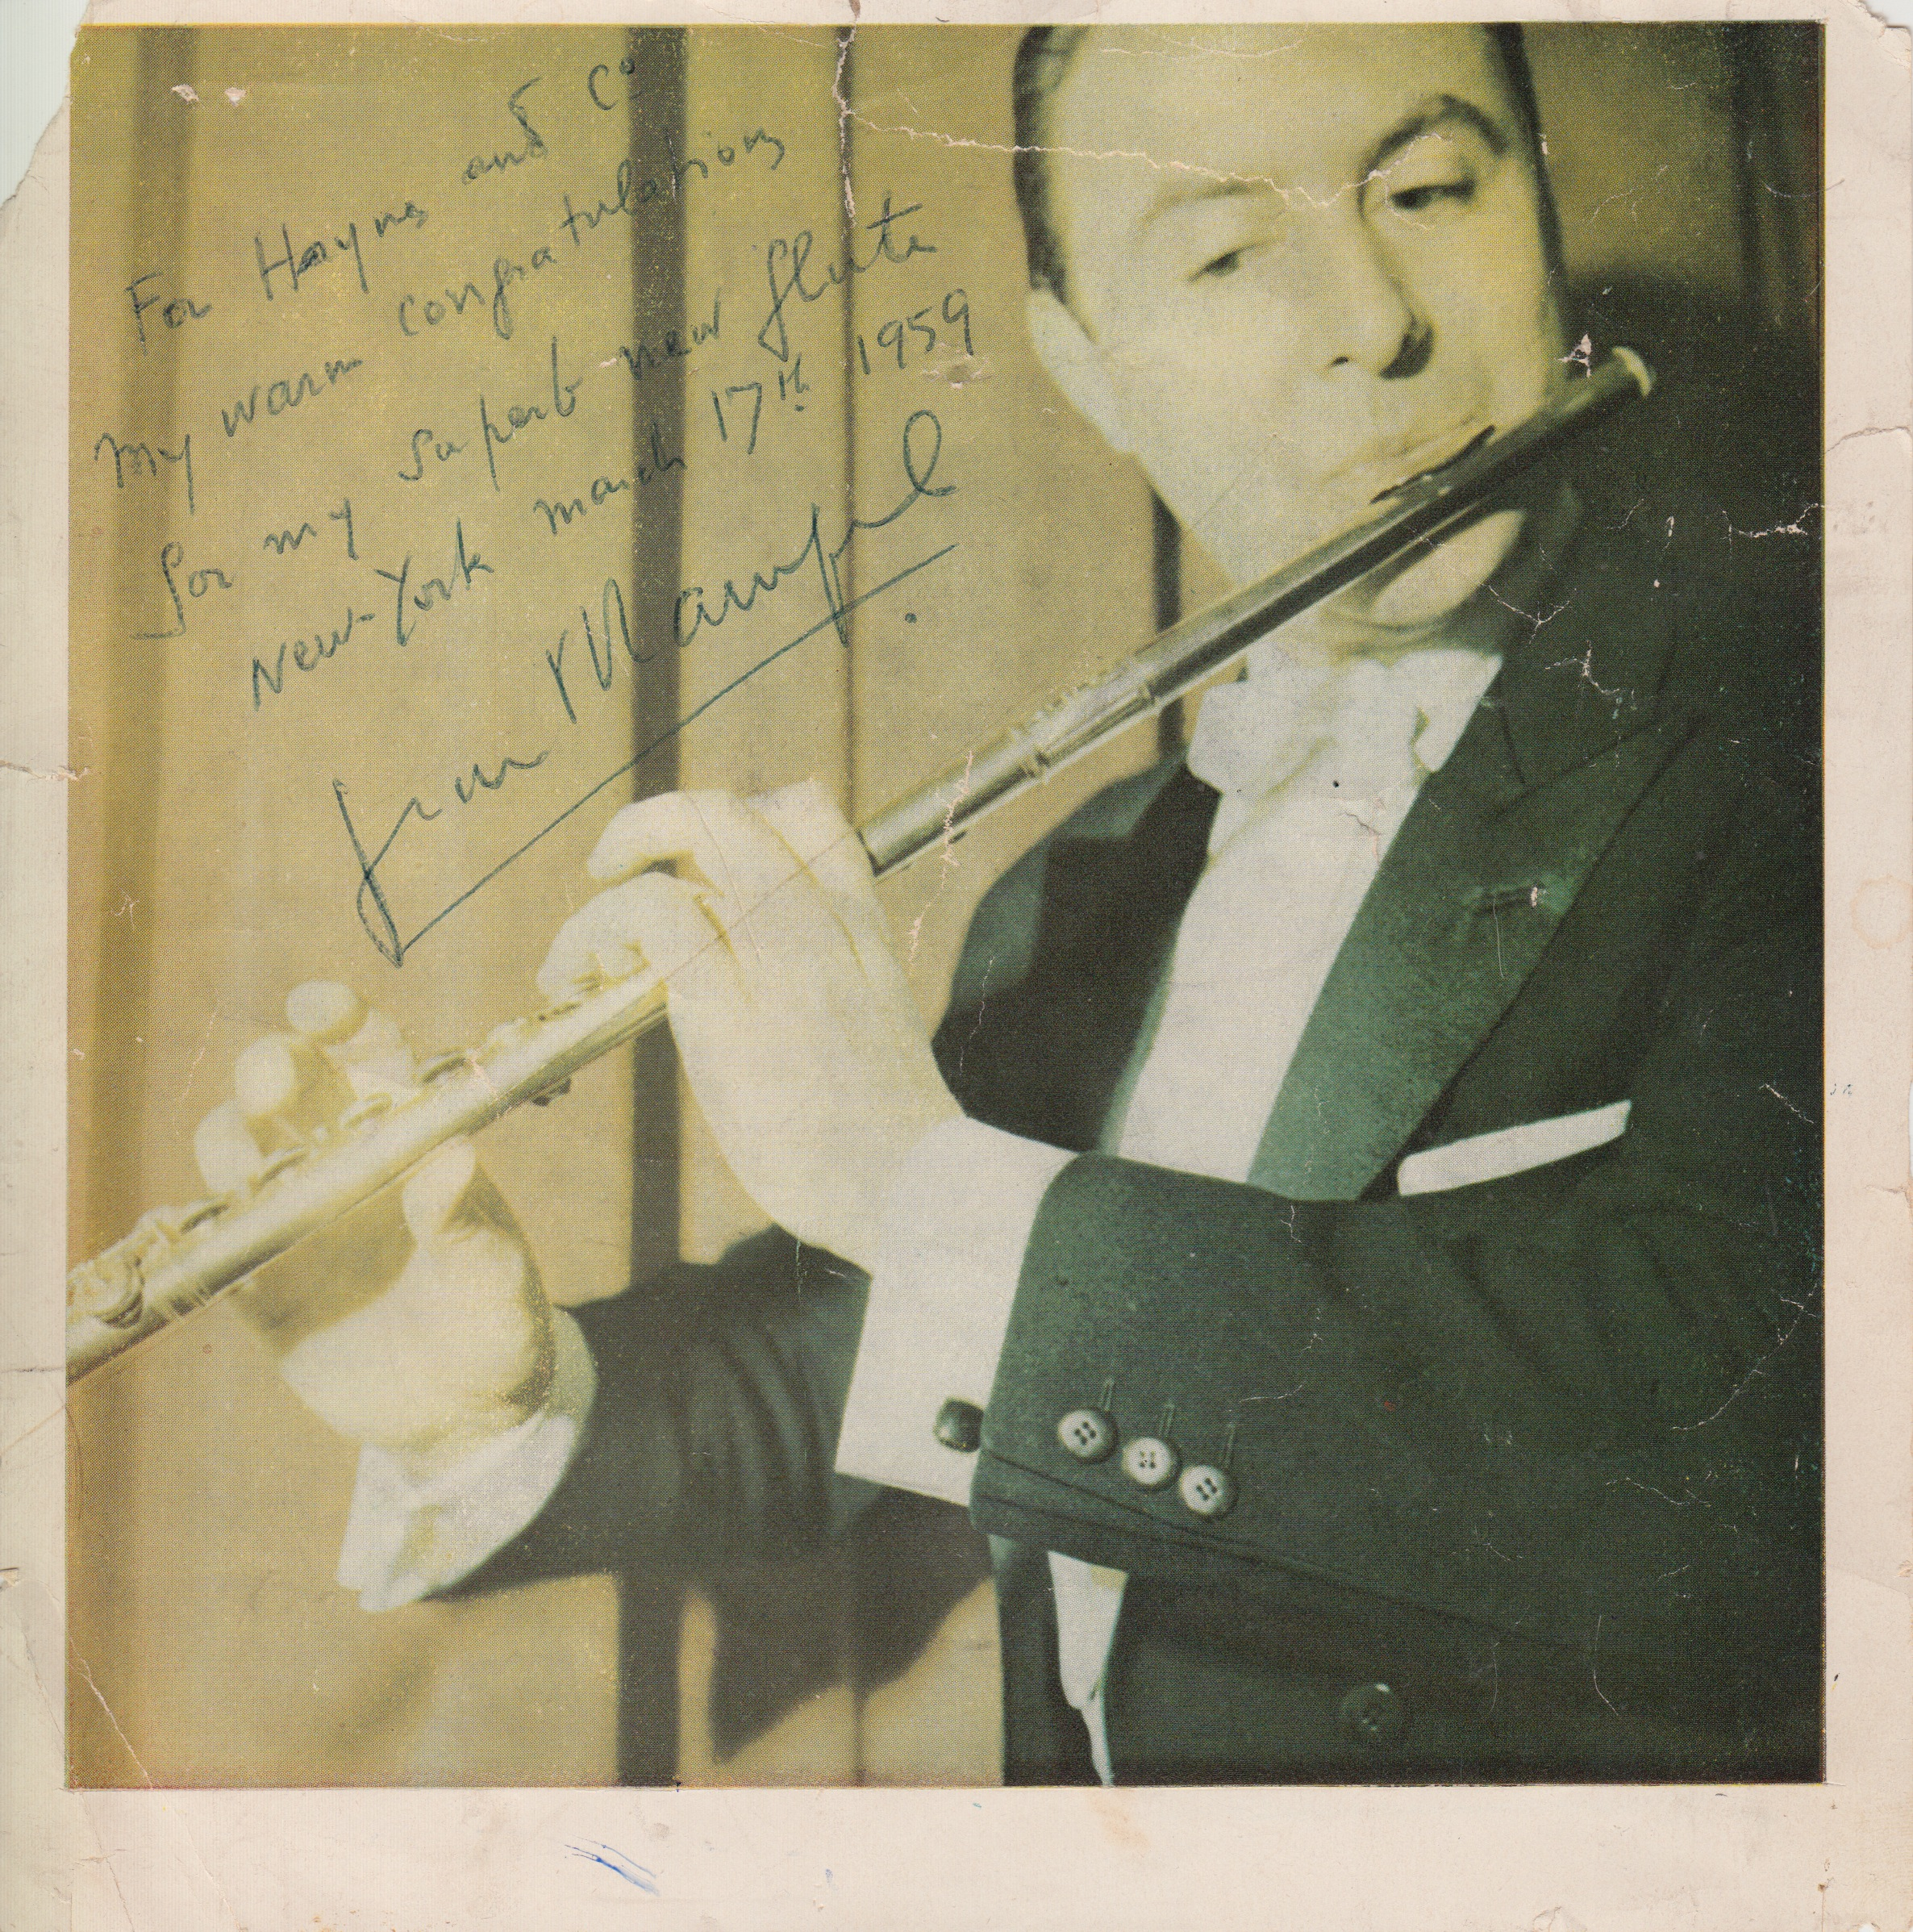 """1958 – Jean-Pierre Rampal gives his debut concert in the United States at the Library of Congress in Washington DC.1959 – Haynes creates flute #29333 for Mr. Rampal. - Rampal gave the USA premiere of the Sonata for Flute and Piano by Francis Poulenc at this concert. Lola Haynes and Phillip Kaplan played a major role in bringing Rampal to the United States for this performance. During his stay, Rampal made his way to Boston and visited the Haynes workshop. He had his older flute with him and asked if the Haynes Company could make a copy with sturdier keywork and a more comfortable scale. The artisans at the company were thrilled to make an instrument to his specifications and began making the great maestro's first Haynes flute.Rampal's flute was a French model, open hole, thin wall (0.09"""" wall), 14k yellow gold flute with C footjoint."""